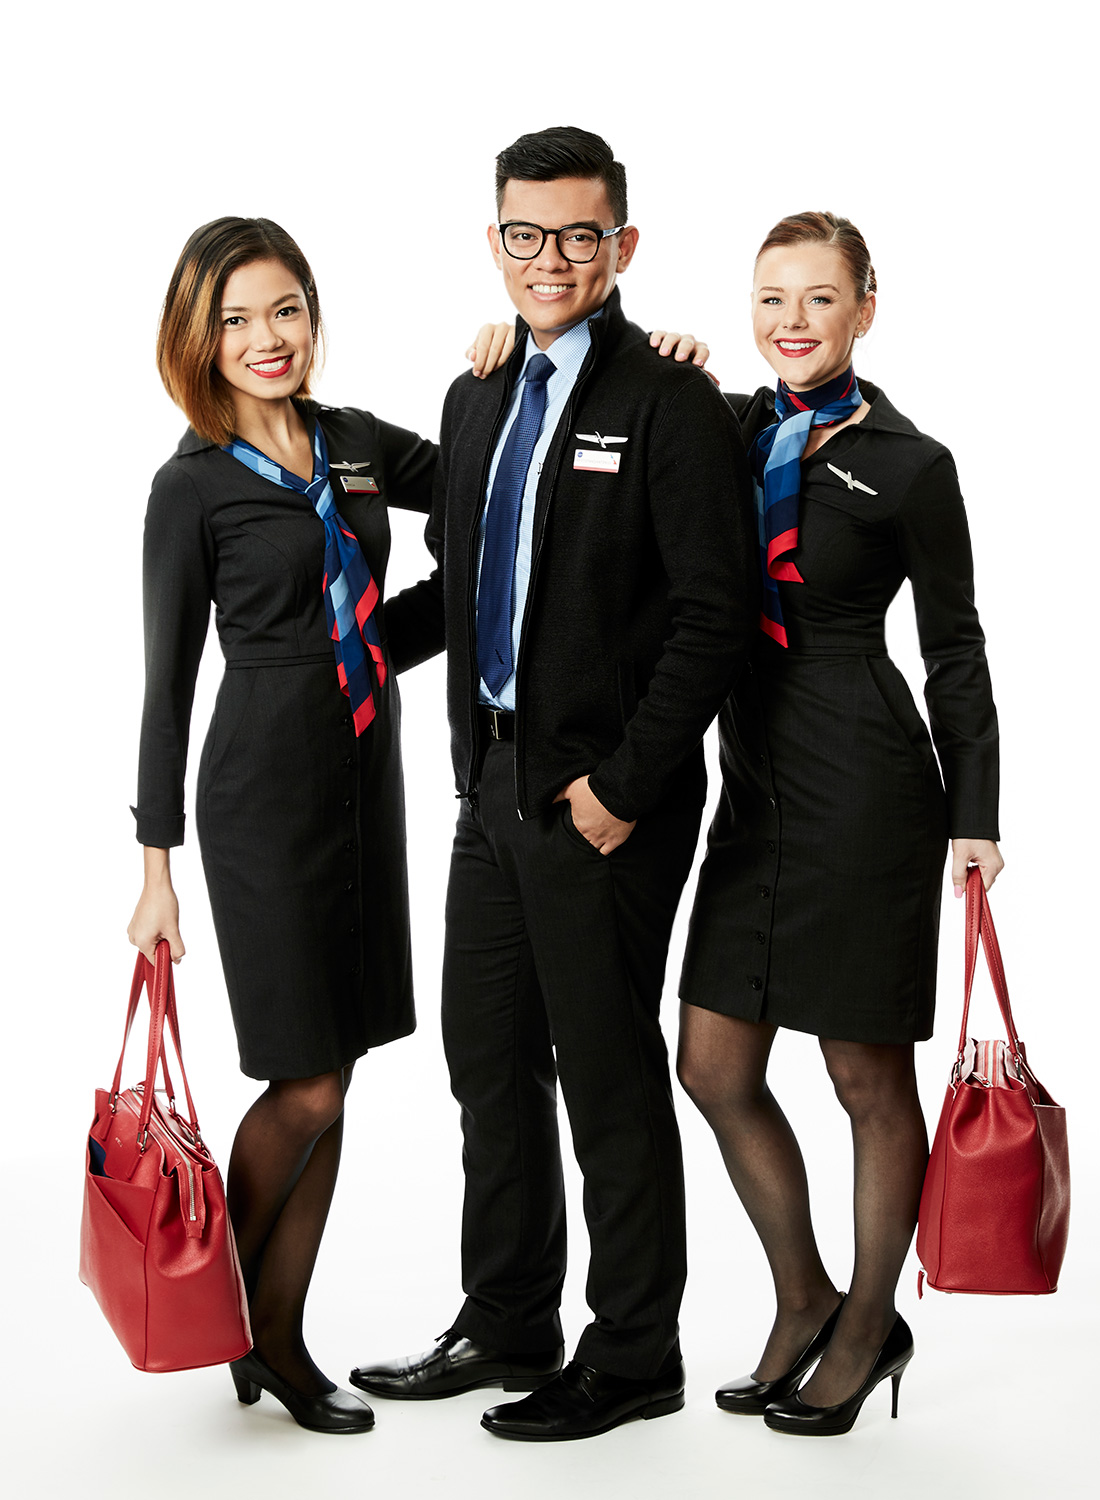 160920_AmericanAirlines_Portraits_By_BriJohnson_0006.jpg